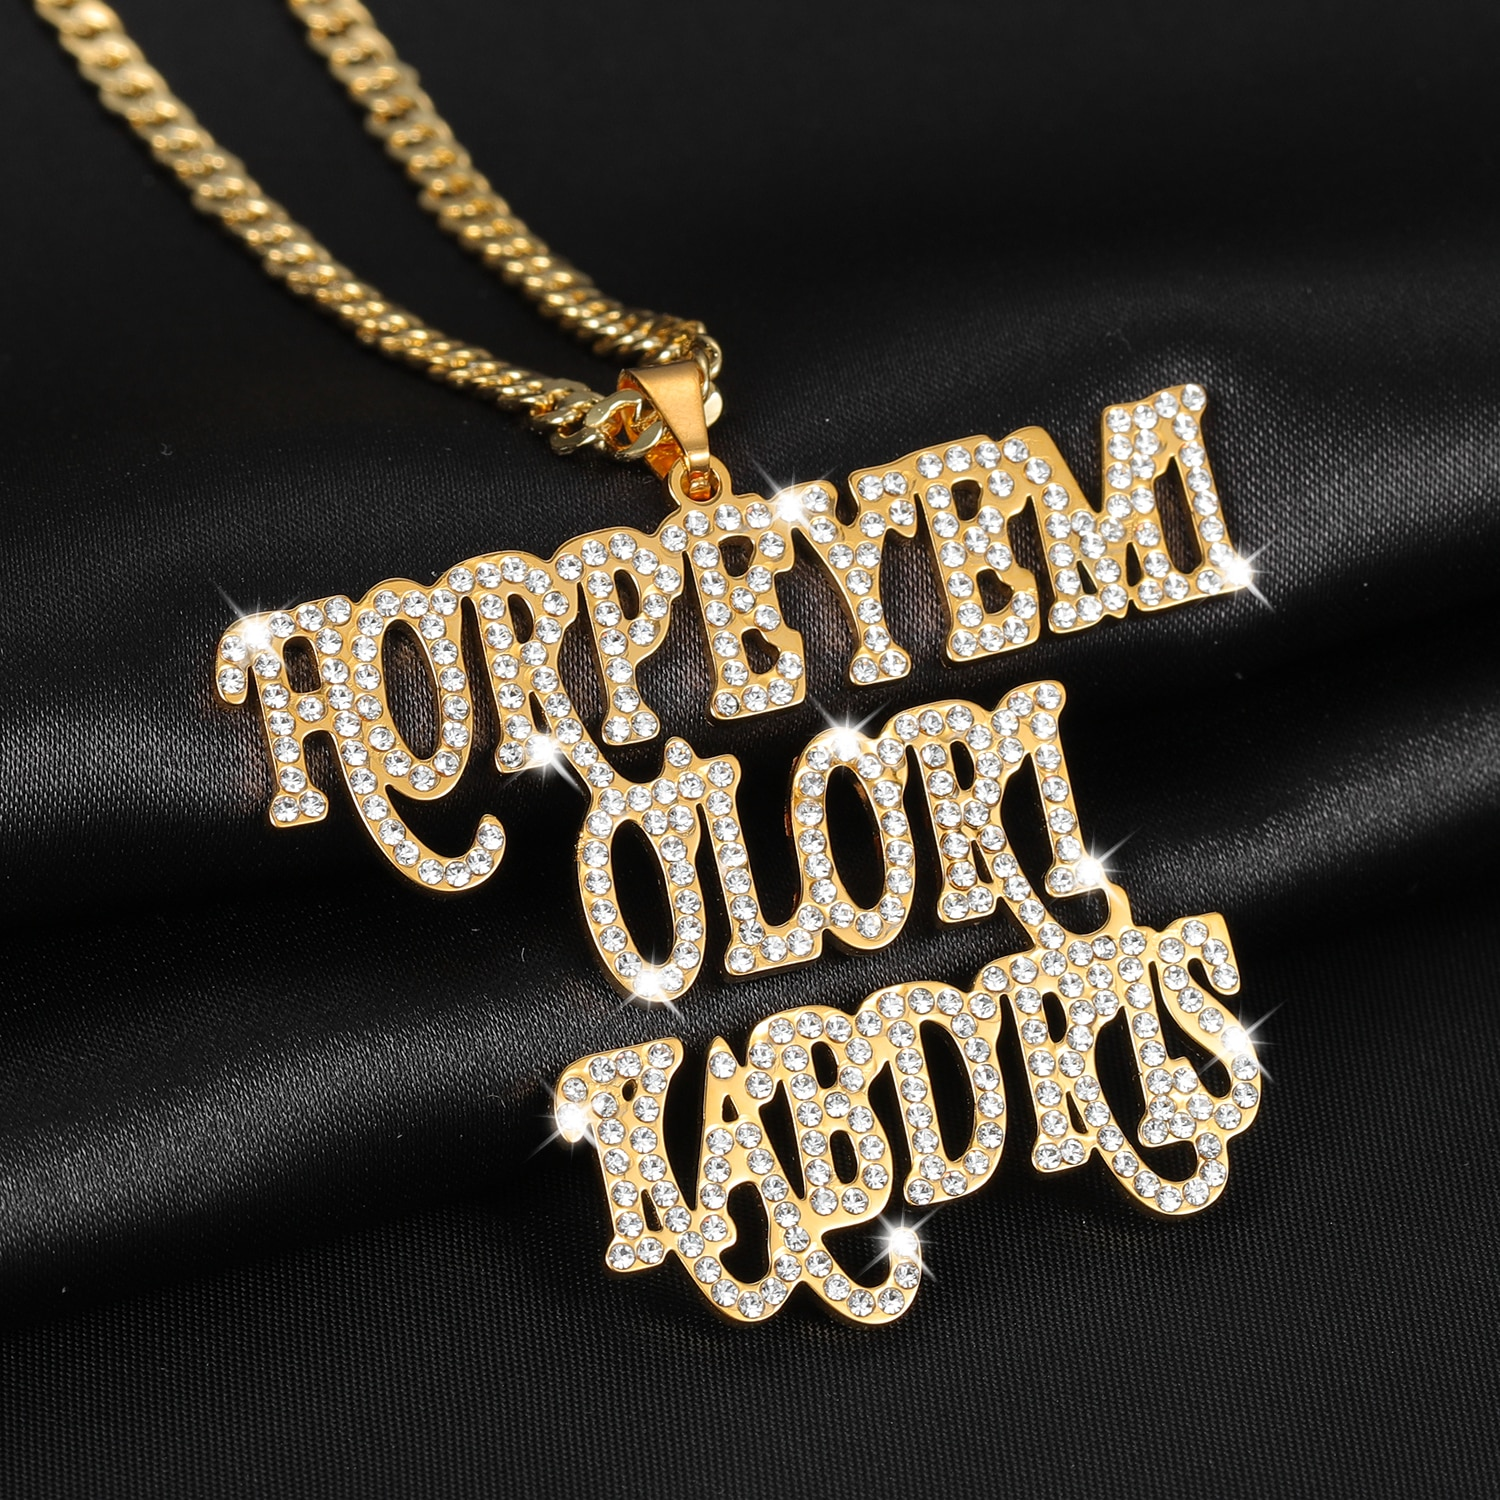 Customized Name Zirconia Double Necklace Personalized Iced Out  Nameplate Necklace Thick Chain Hip Hop Choker Jewelry Women Men hip hop jewelry cuban chain customized nameplate necklaces for women men punk gold tone solid personalized custom name necklace